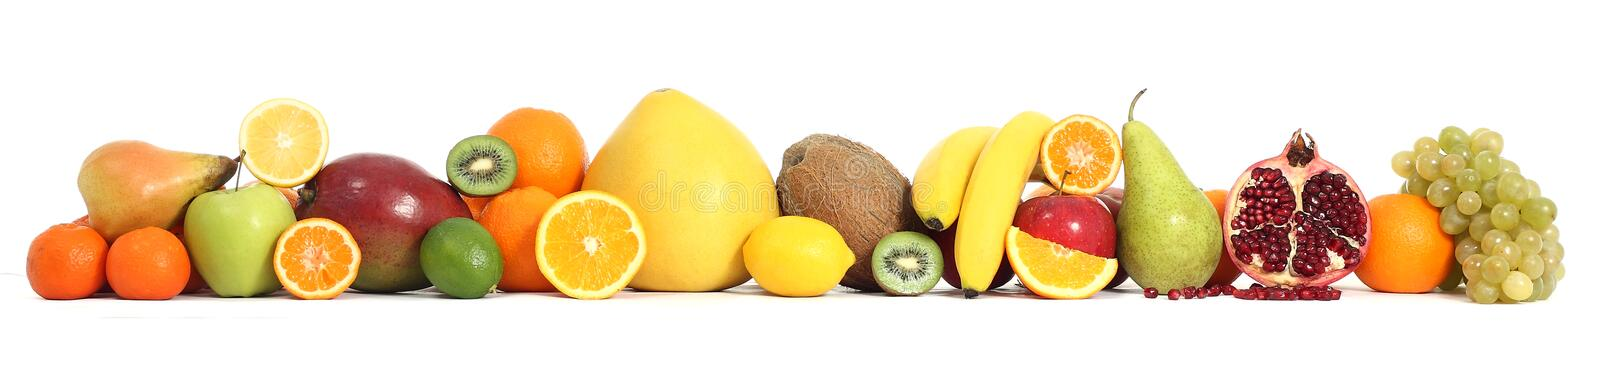 Fruit de nourriture photographie stock